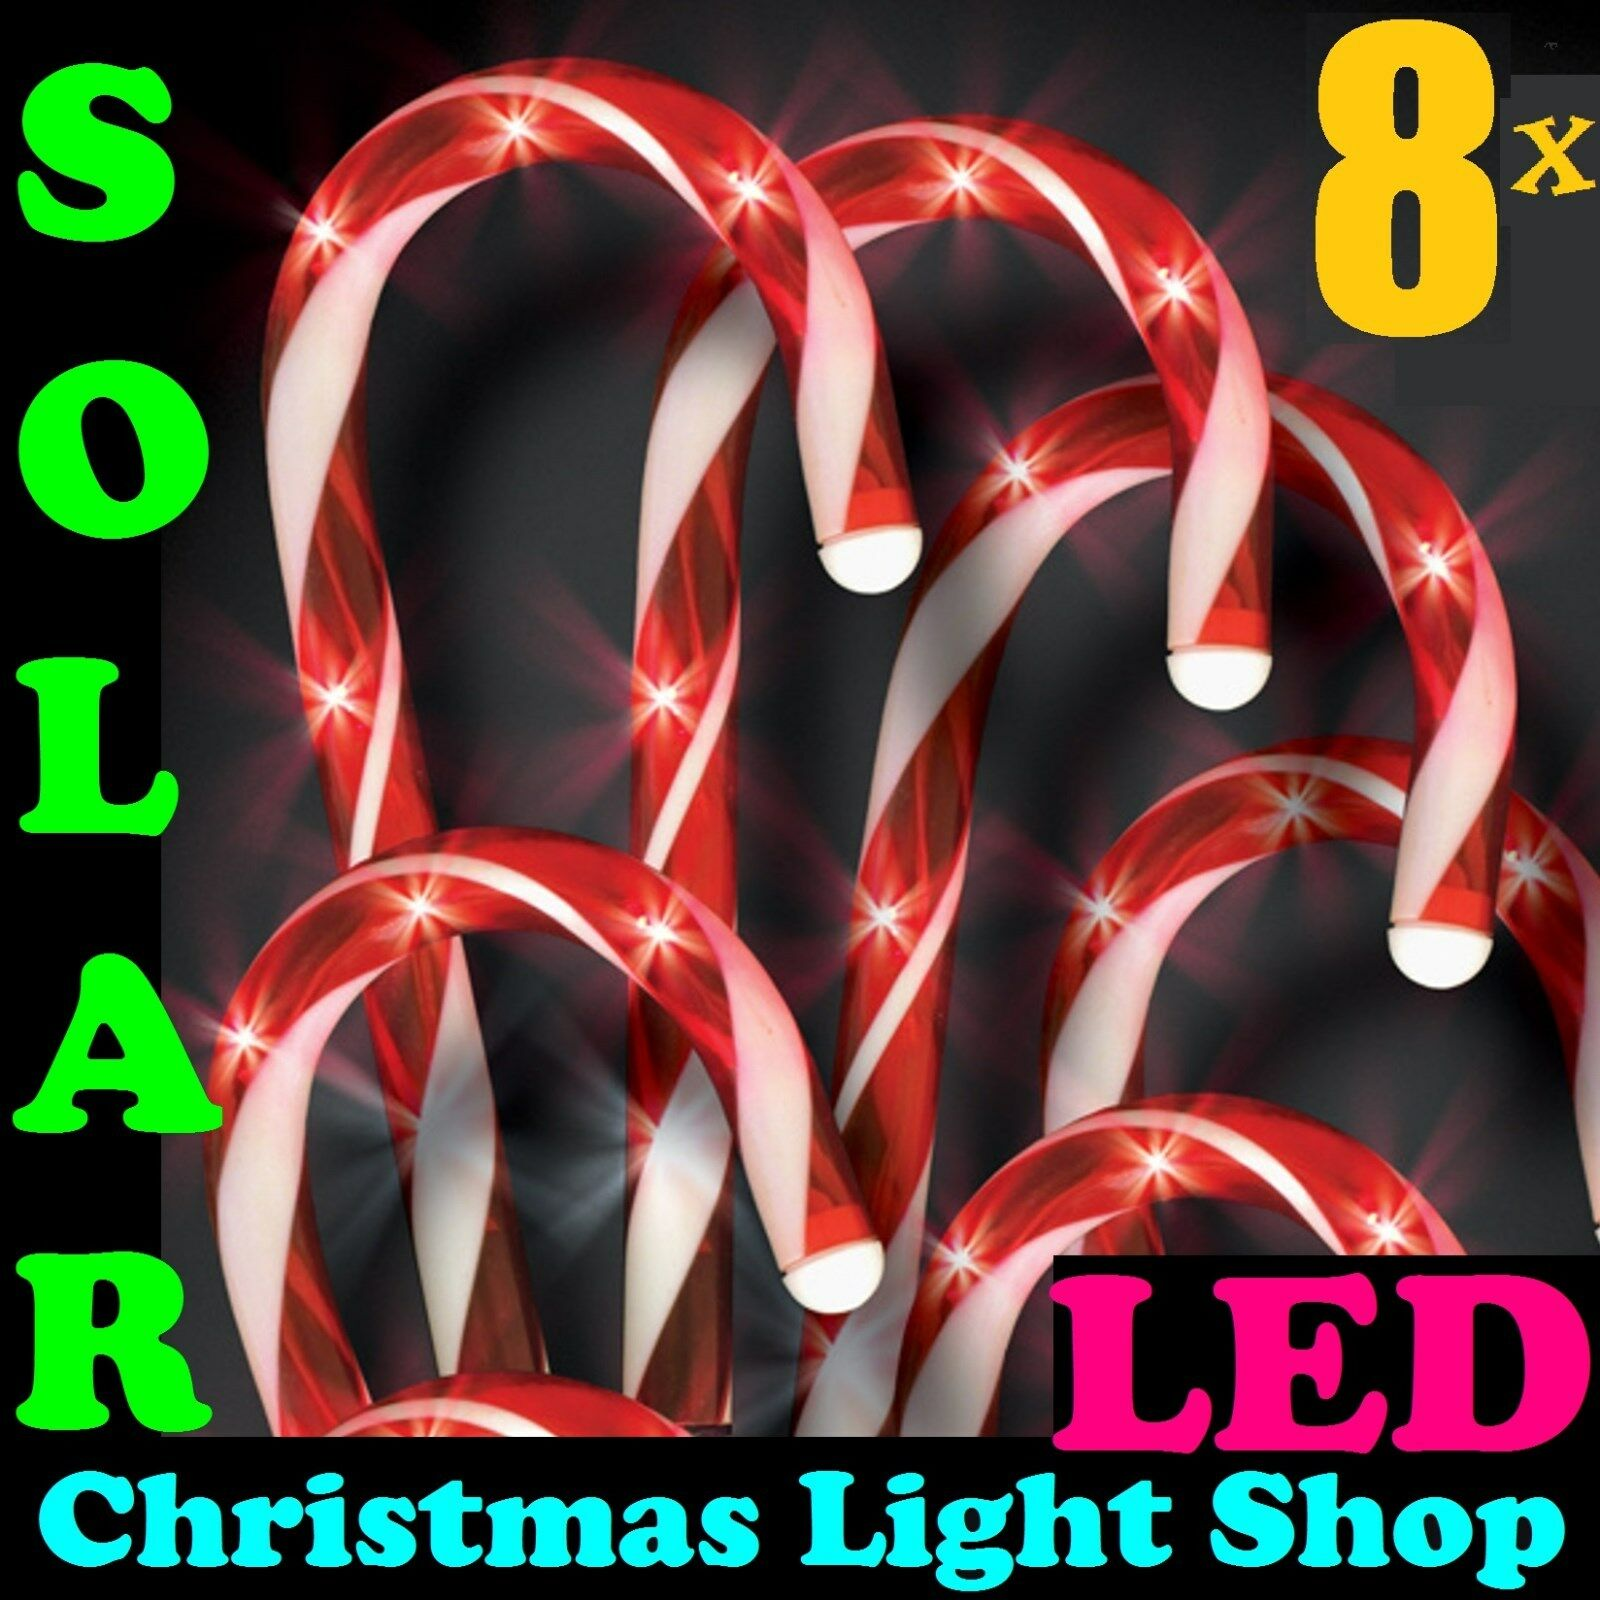 NEW Set 8 Solar LED Red & White Candy Canes Christmas Garden Path Lights Outdoor